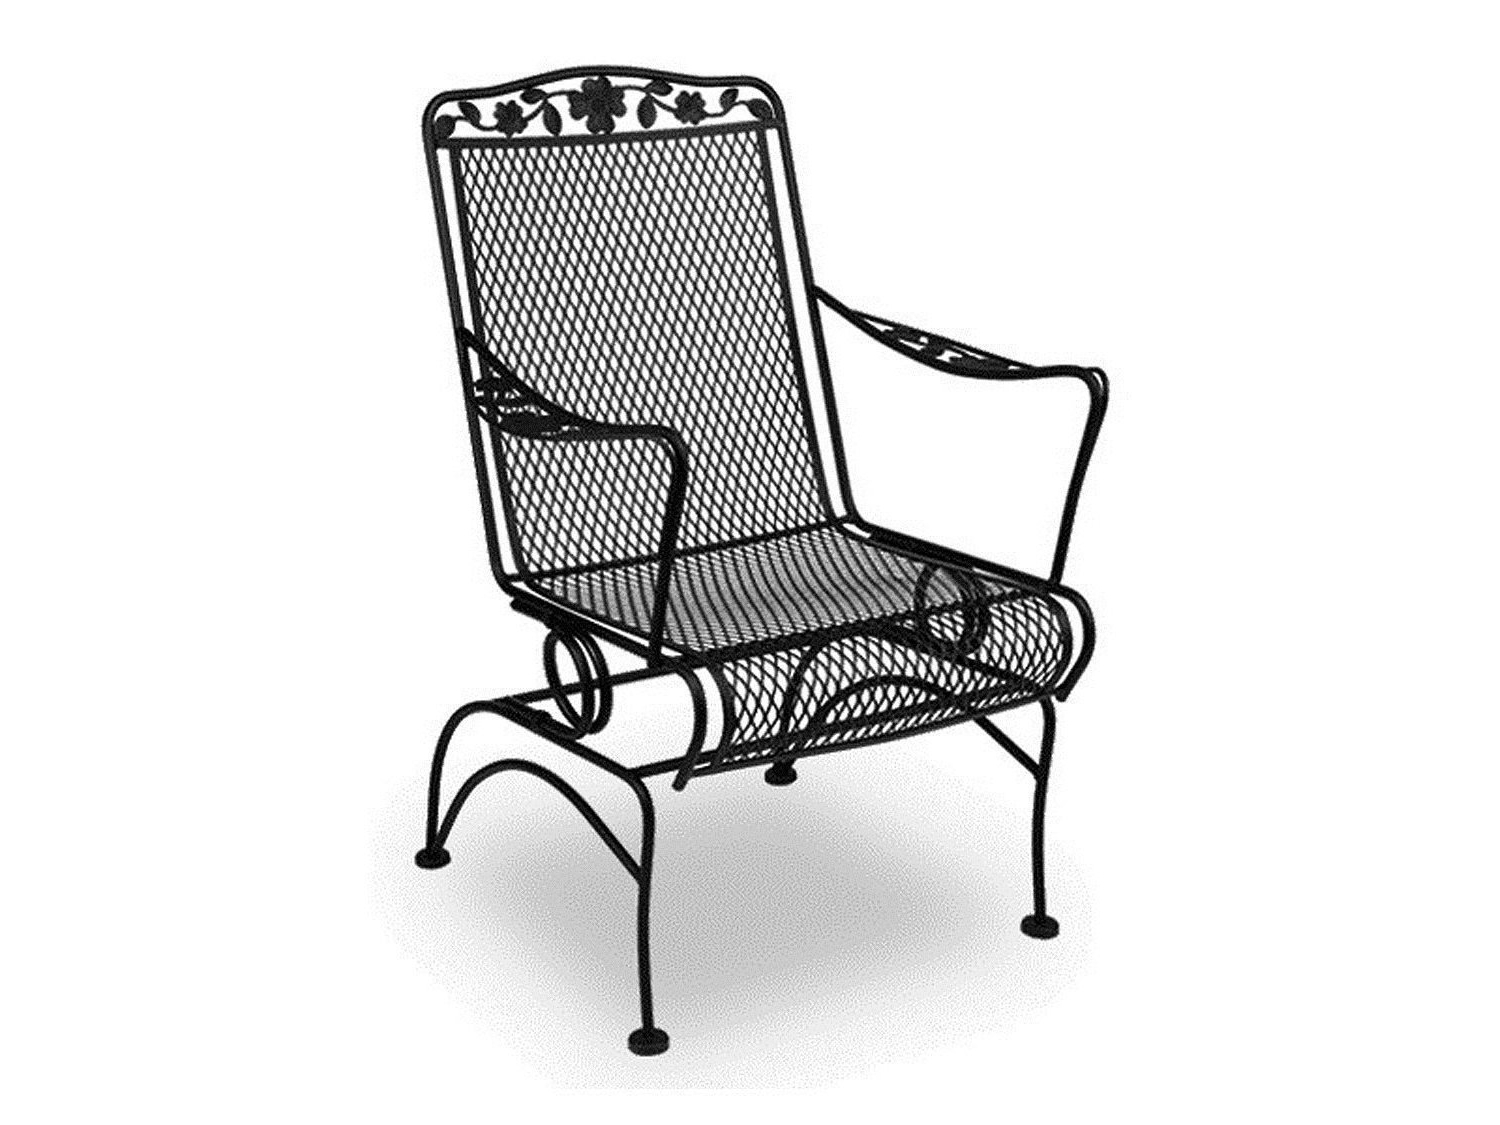 2019 Latest Wrought Iron Patio Rocking Chairs